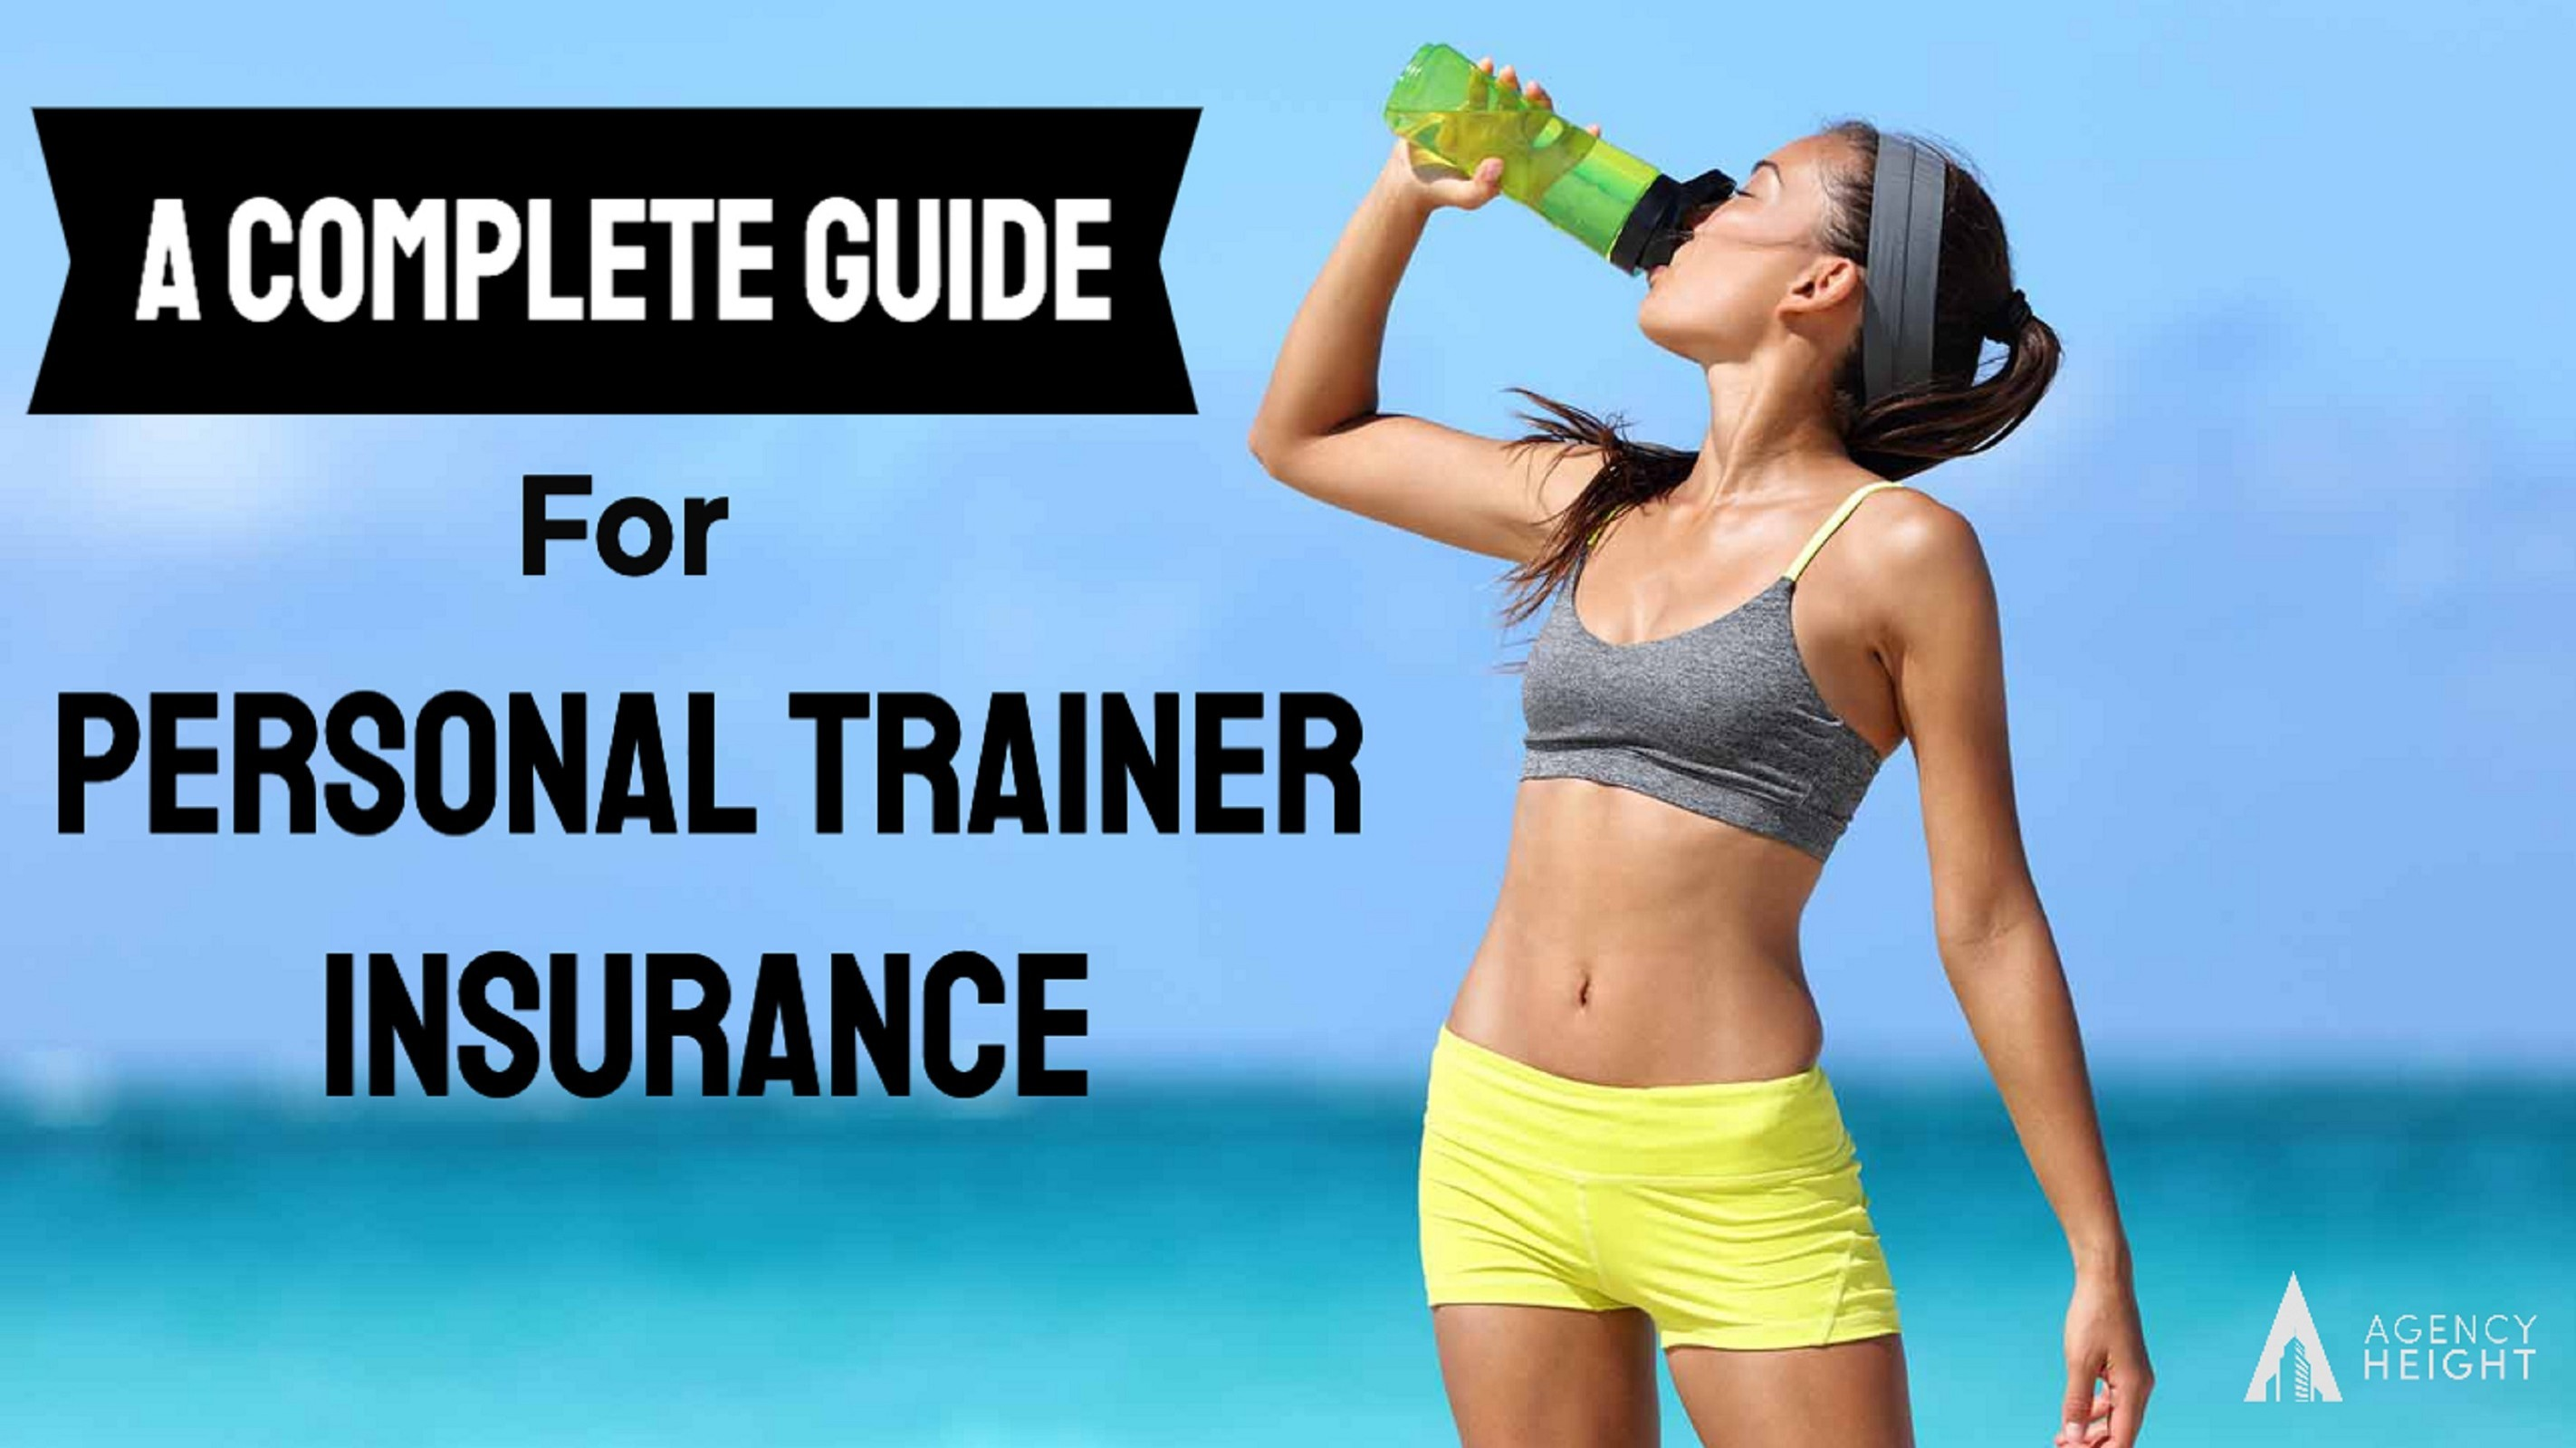 The Best Insurance Guide For Personal Trainers